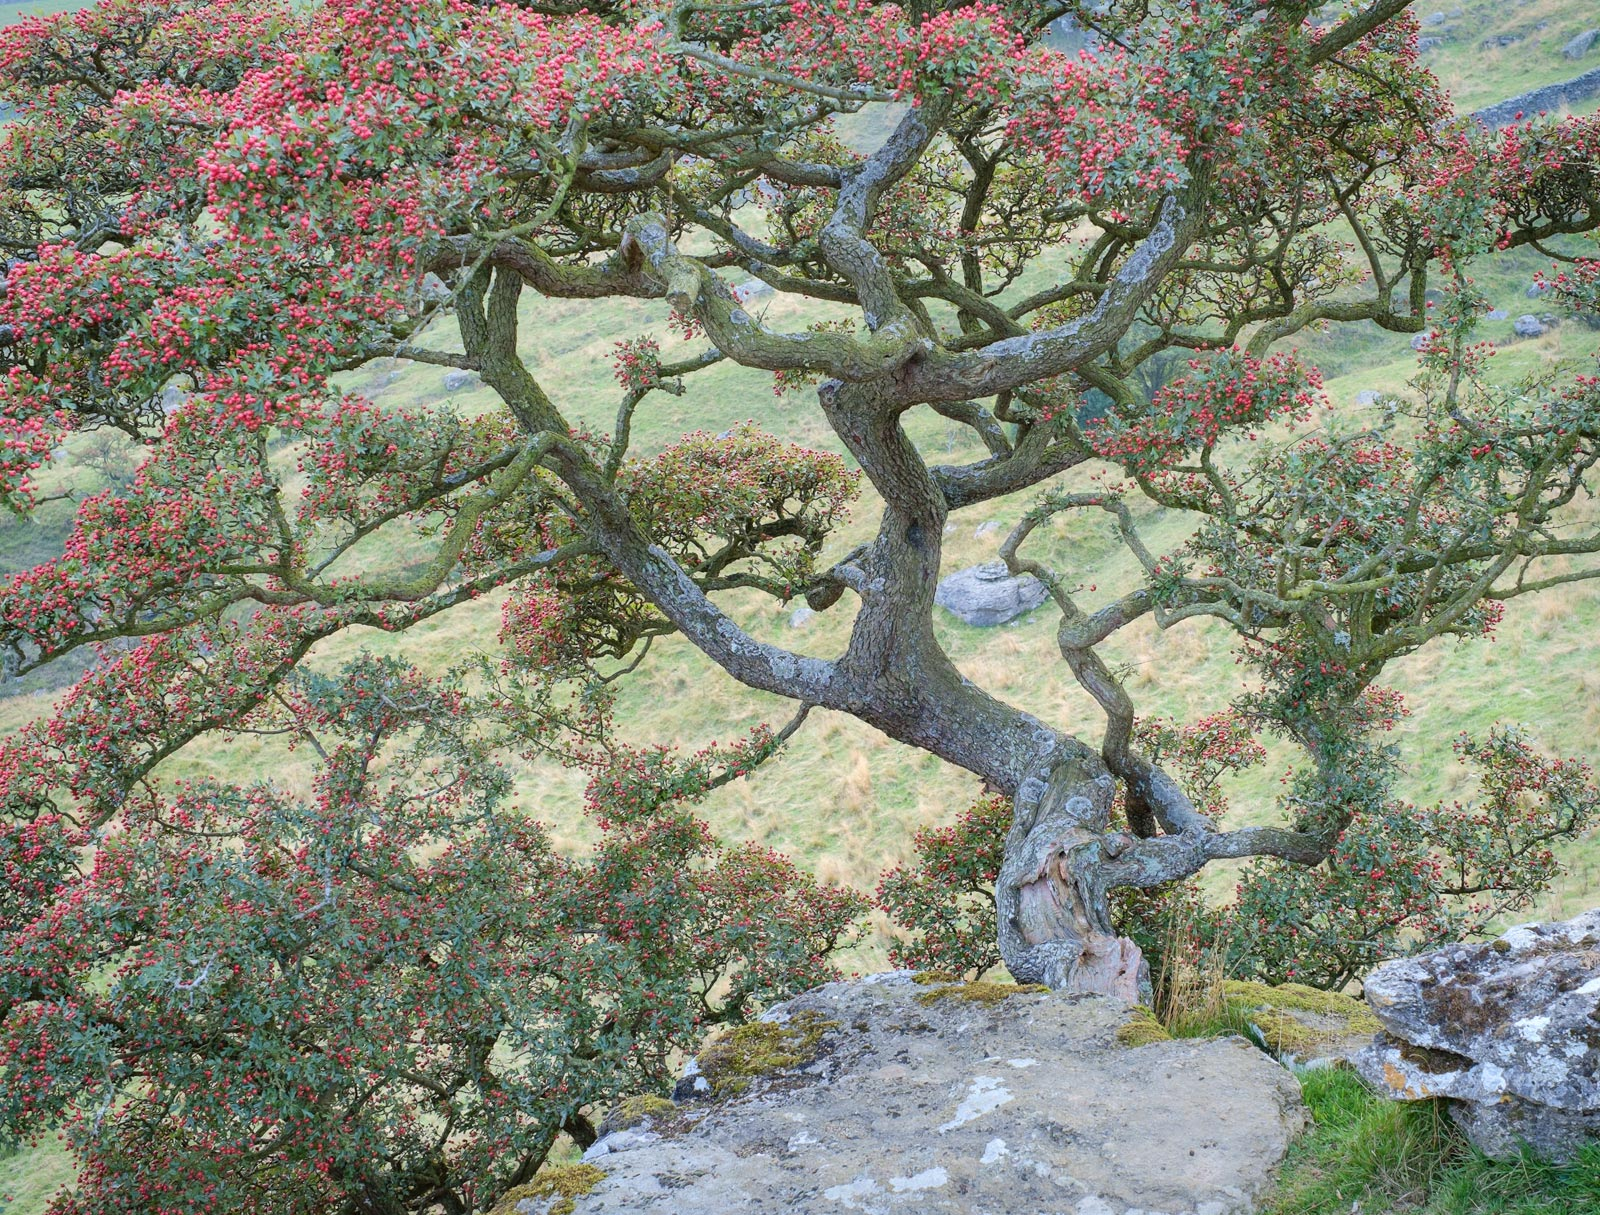 Branches and berries - Hawthorn tree at Norber erratics